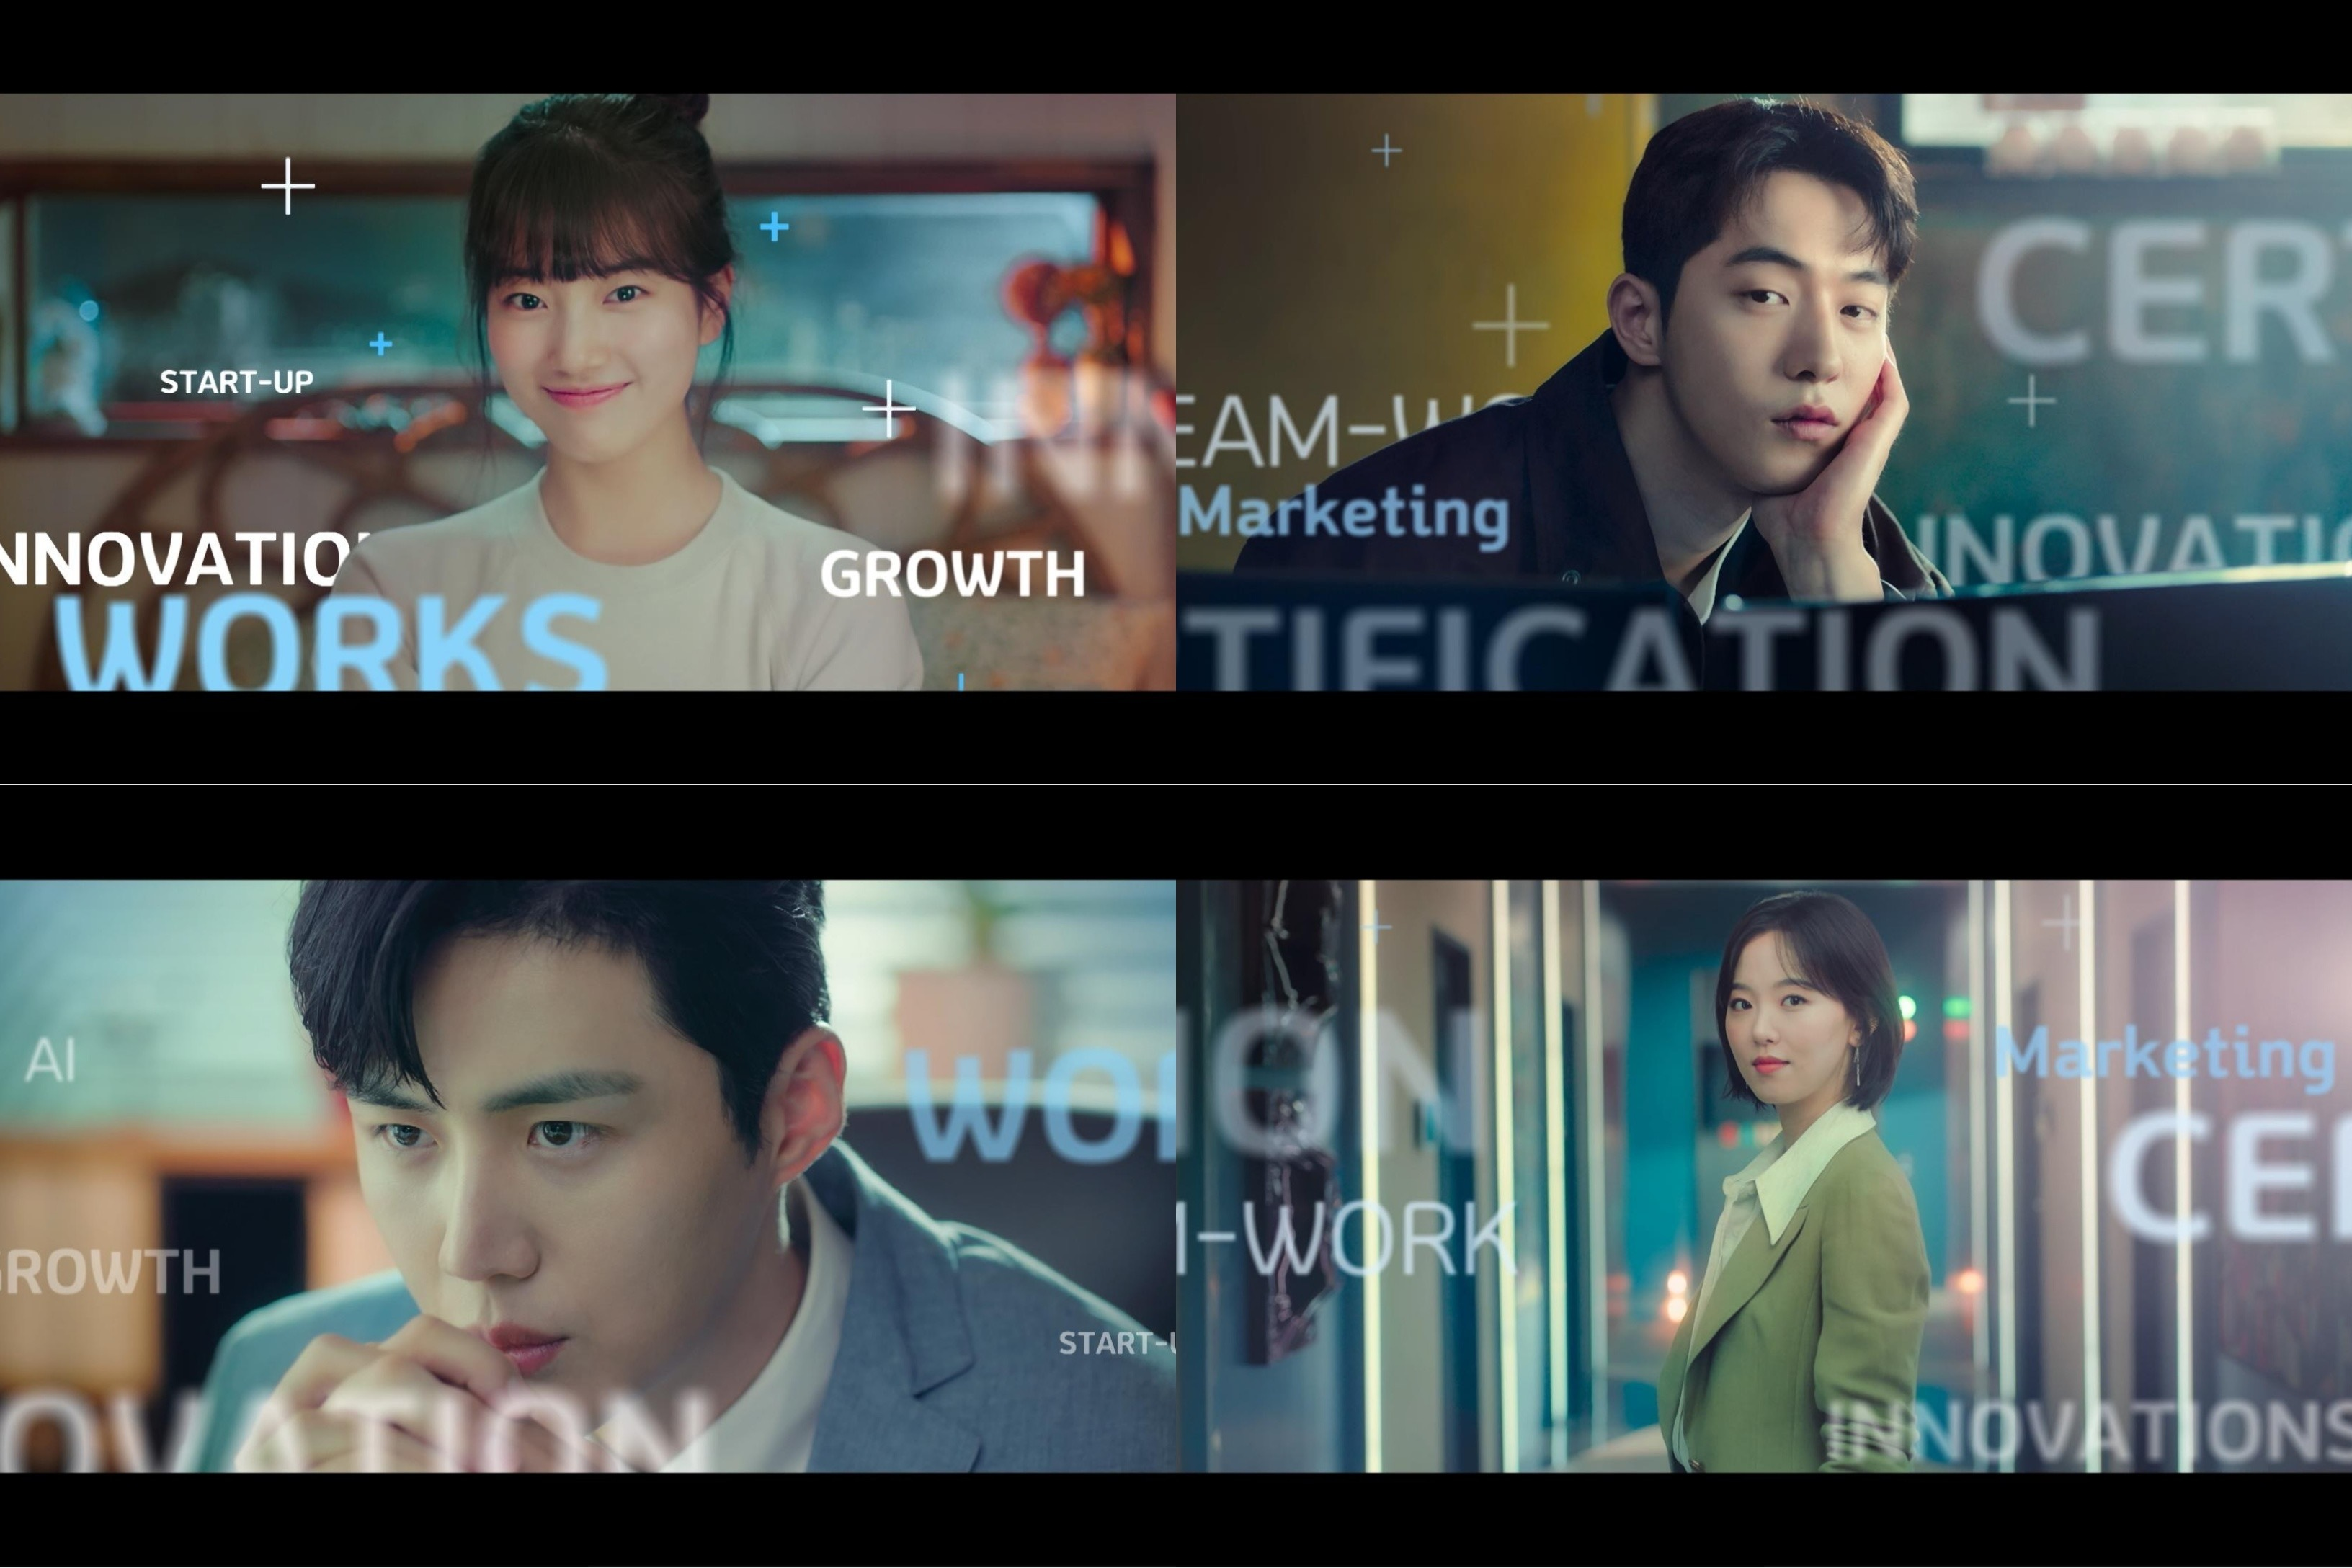 About Netflix - NEW KOREAN DRAMA SERIES START-UP, STARRING BAE SUZY AND NAM  JOO-HYUK, COMES TO NETFLIX IN OCTOBER